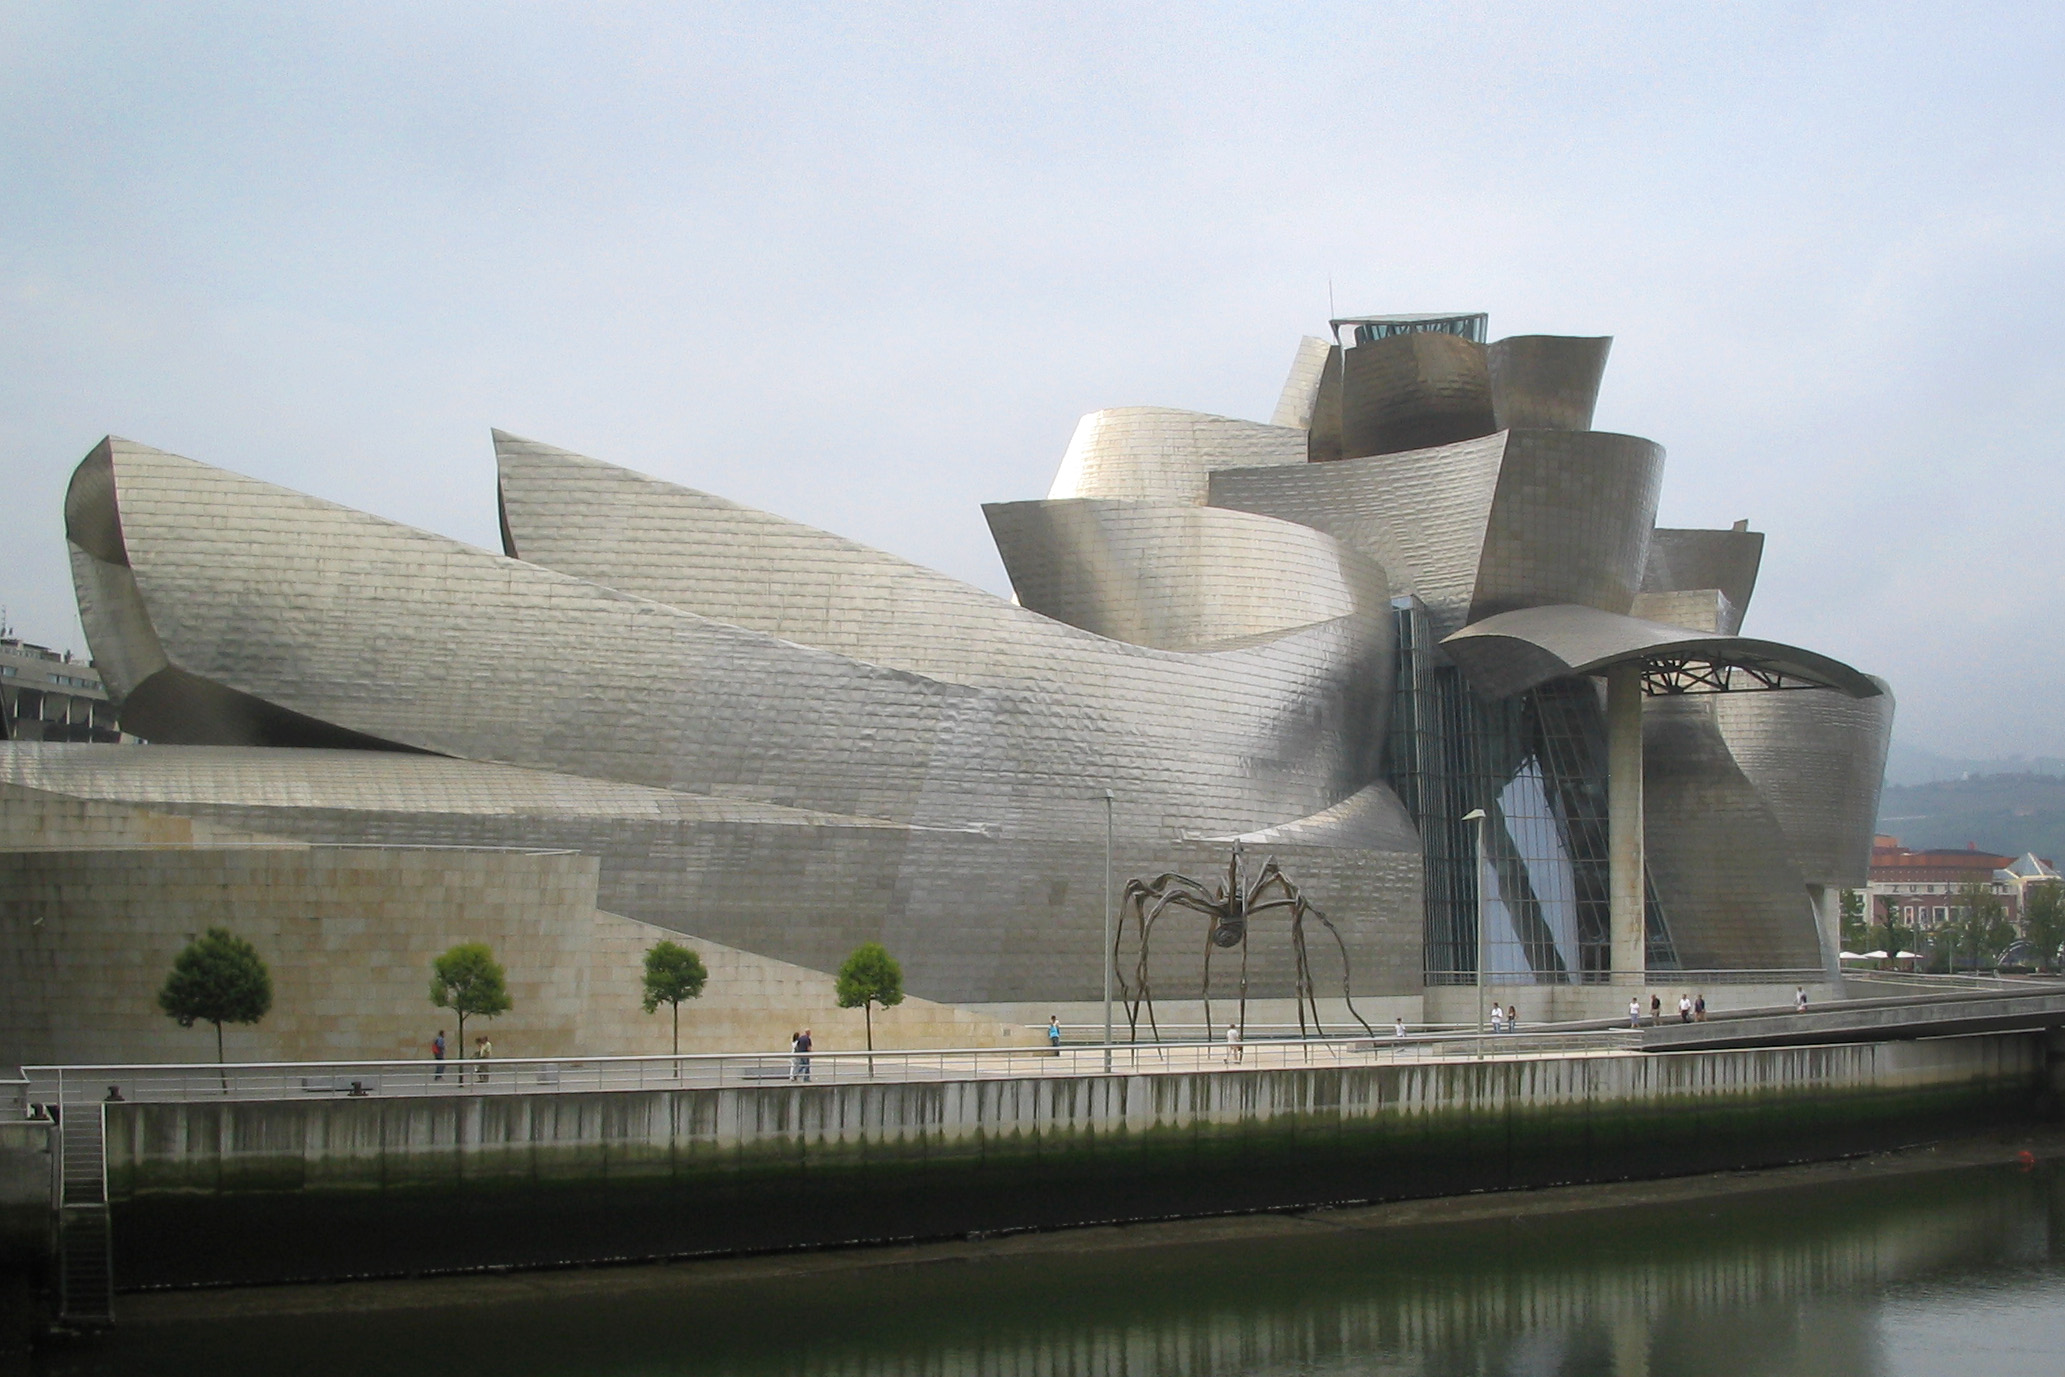 Bilbao   Surprising explorations and experiences in the Basque country